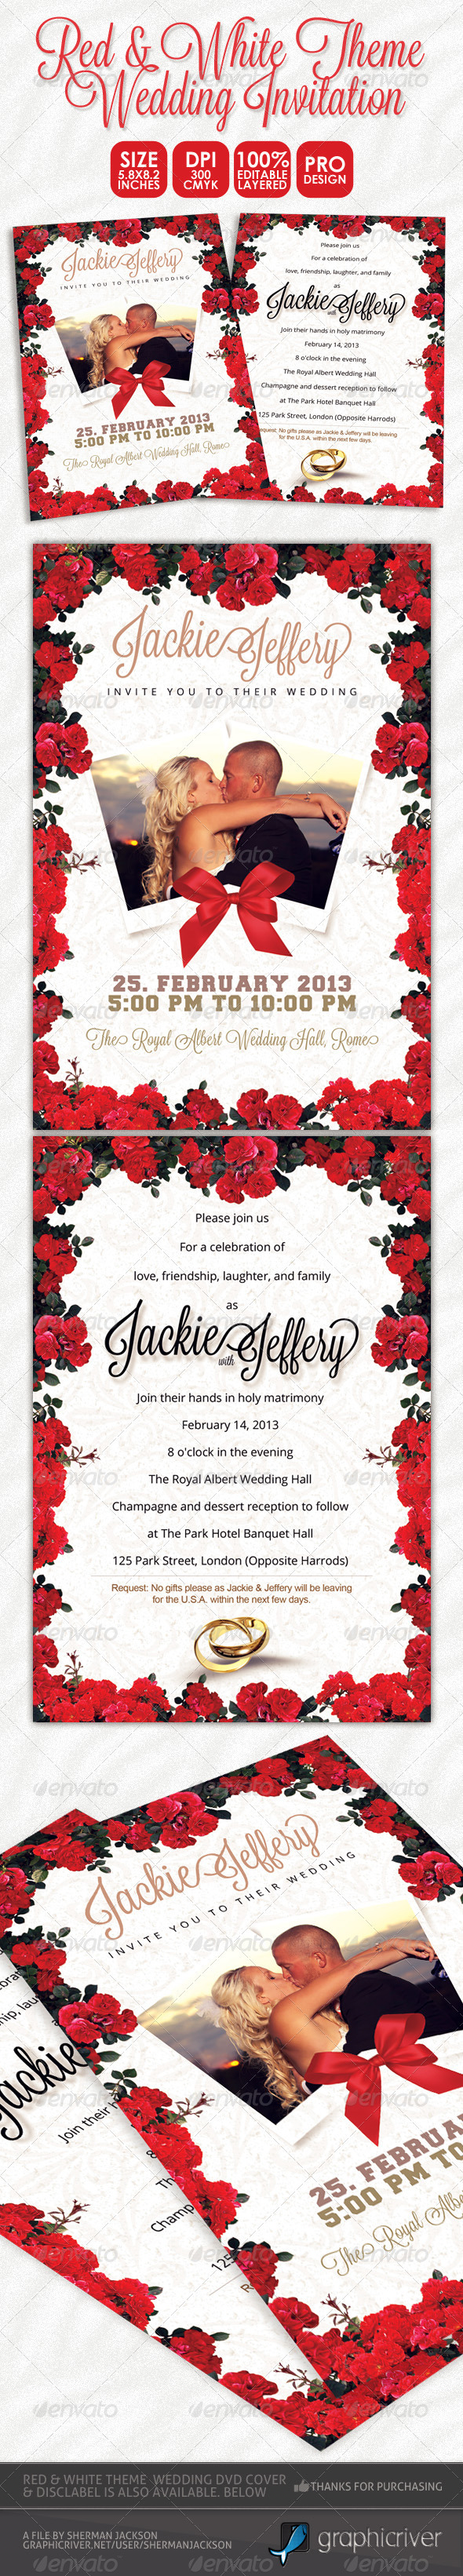 Red & White Theme Wedding Invitation Card by ShermanJackson ...